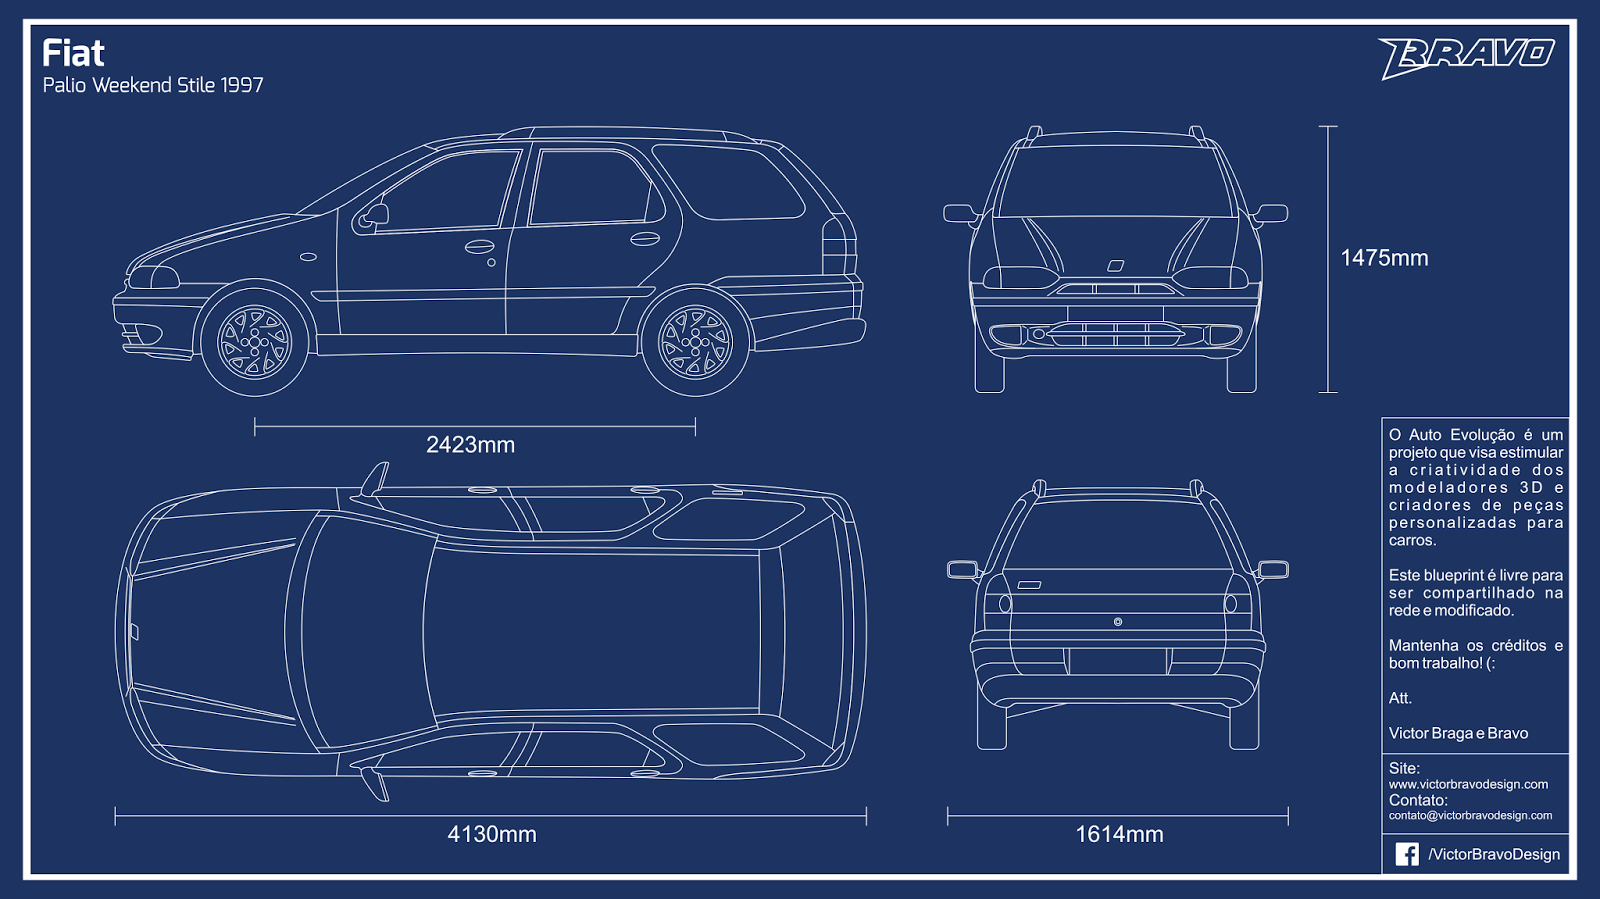 Imagem do blueprint do Fiat Palio Weekend Stile 1997